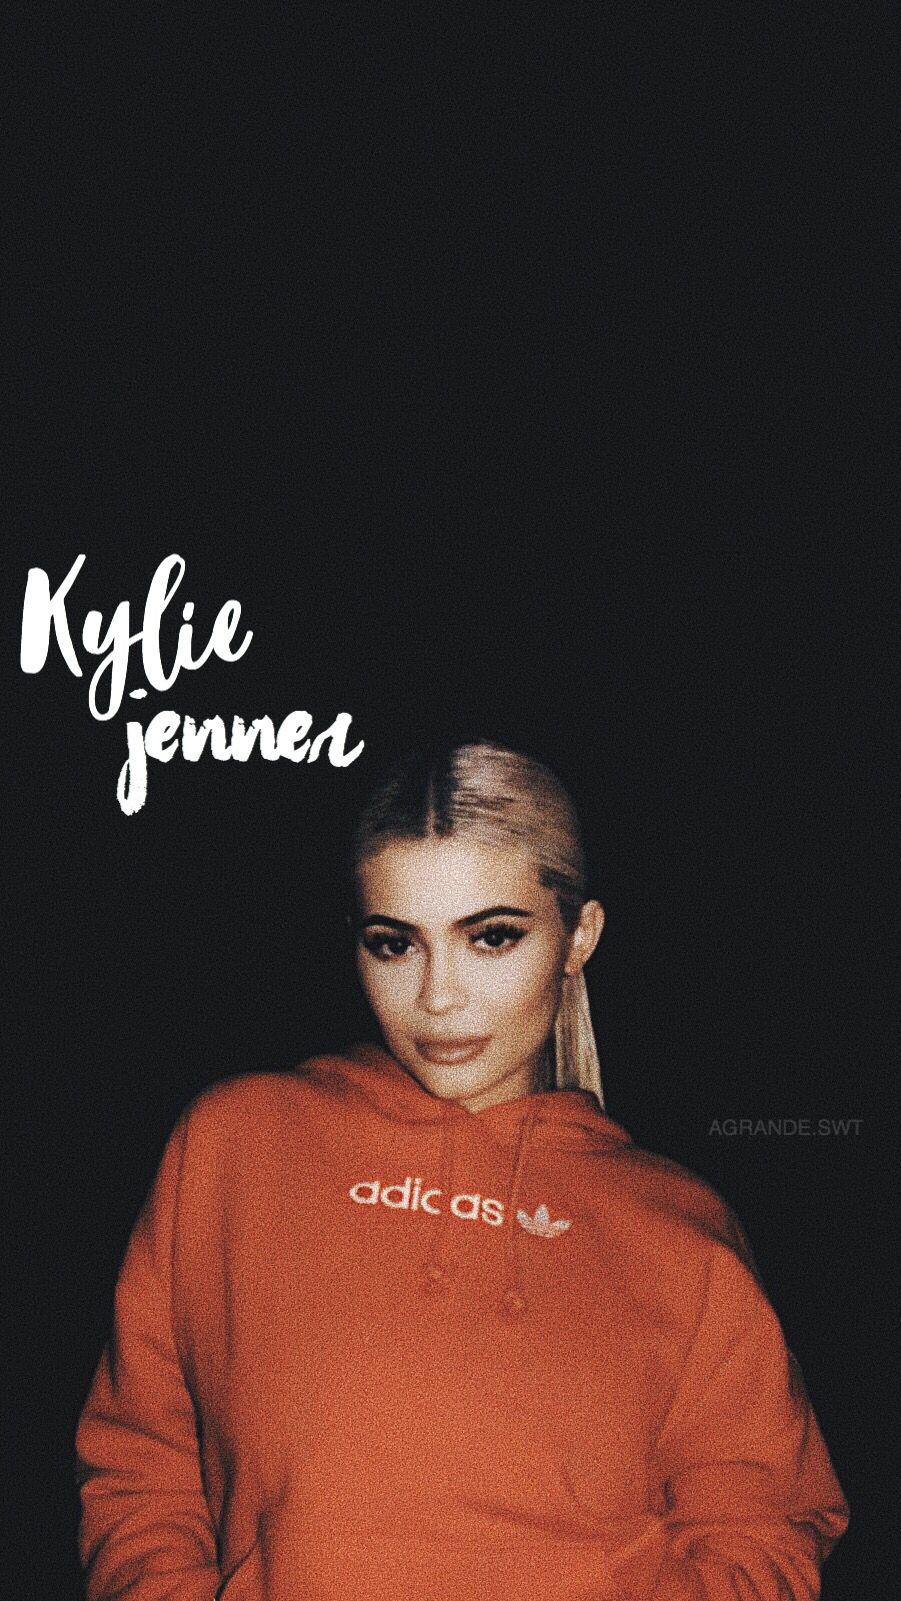 Kylie Jenner Iphone Wallpaper Kylie Kylie Jenner Kylie Jenner Outfits